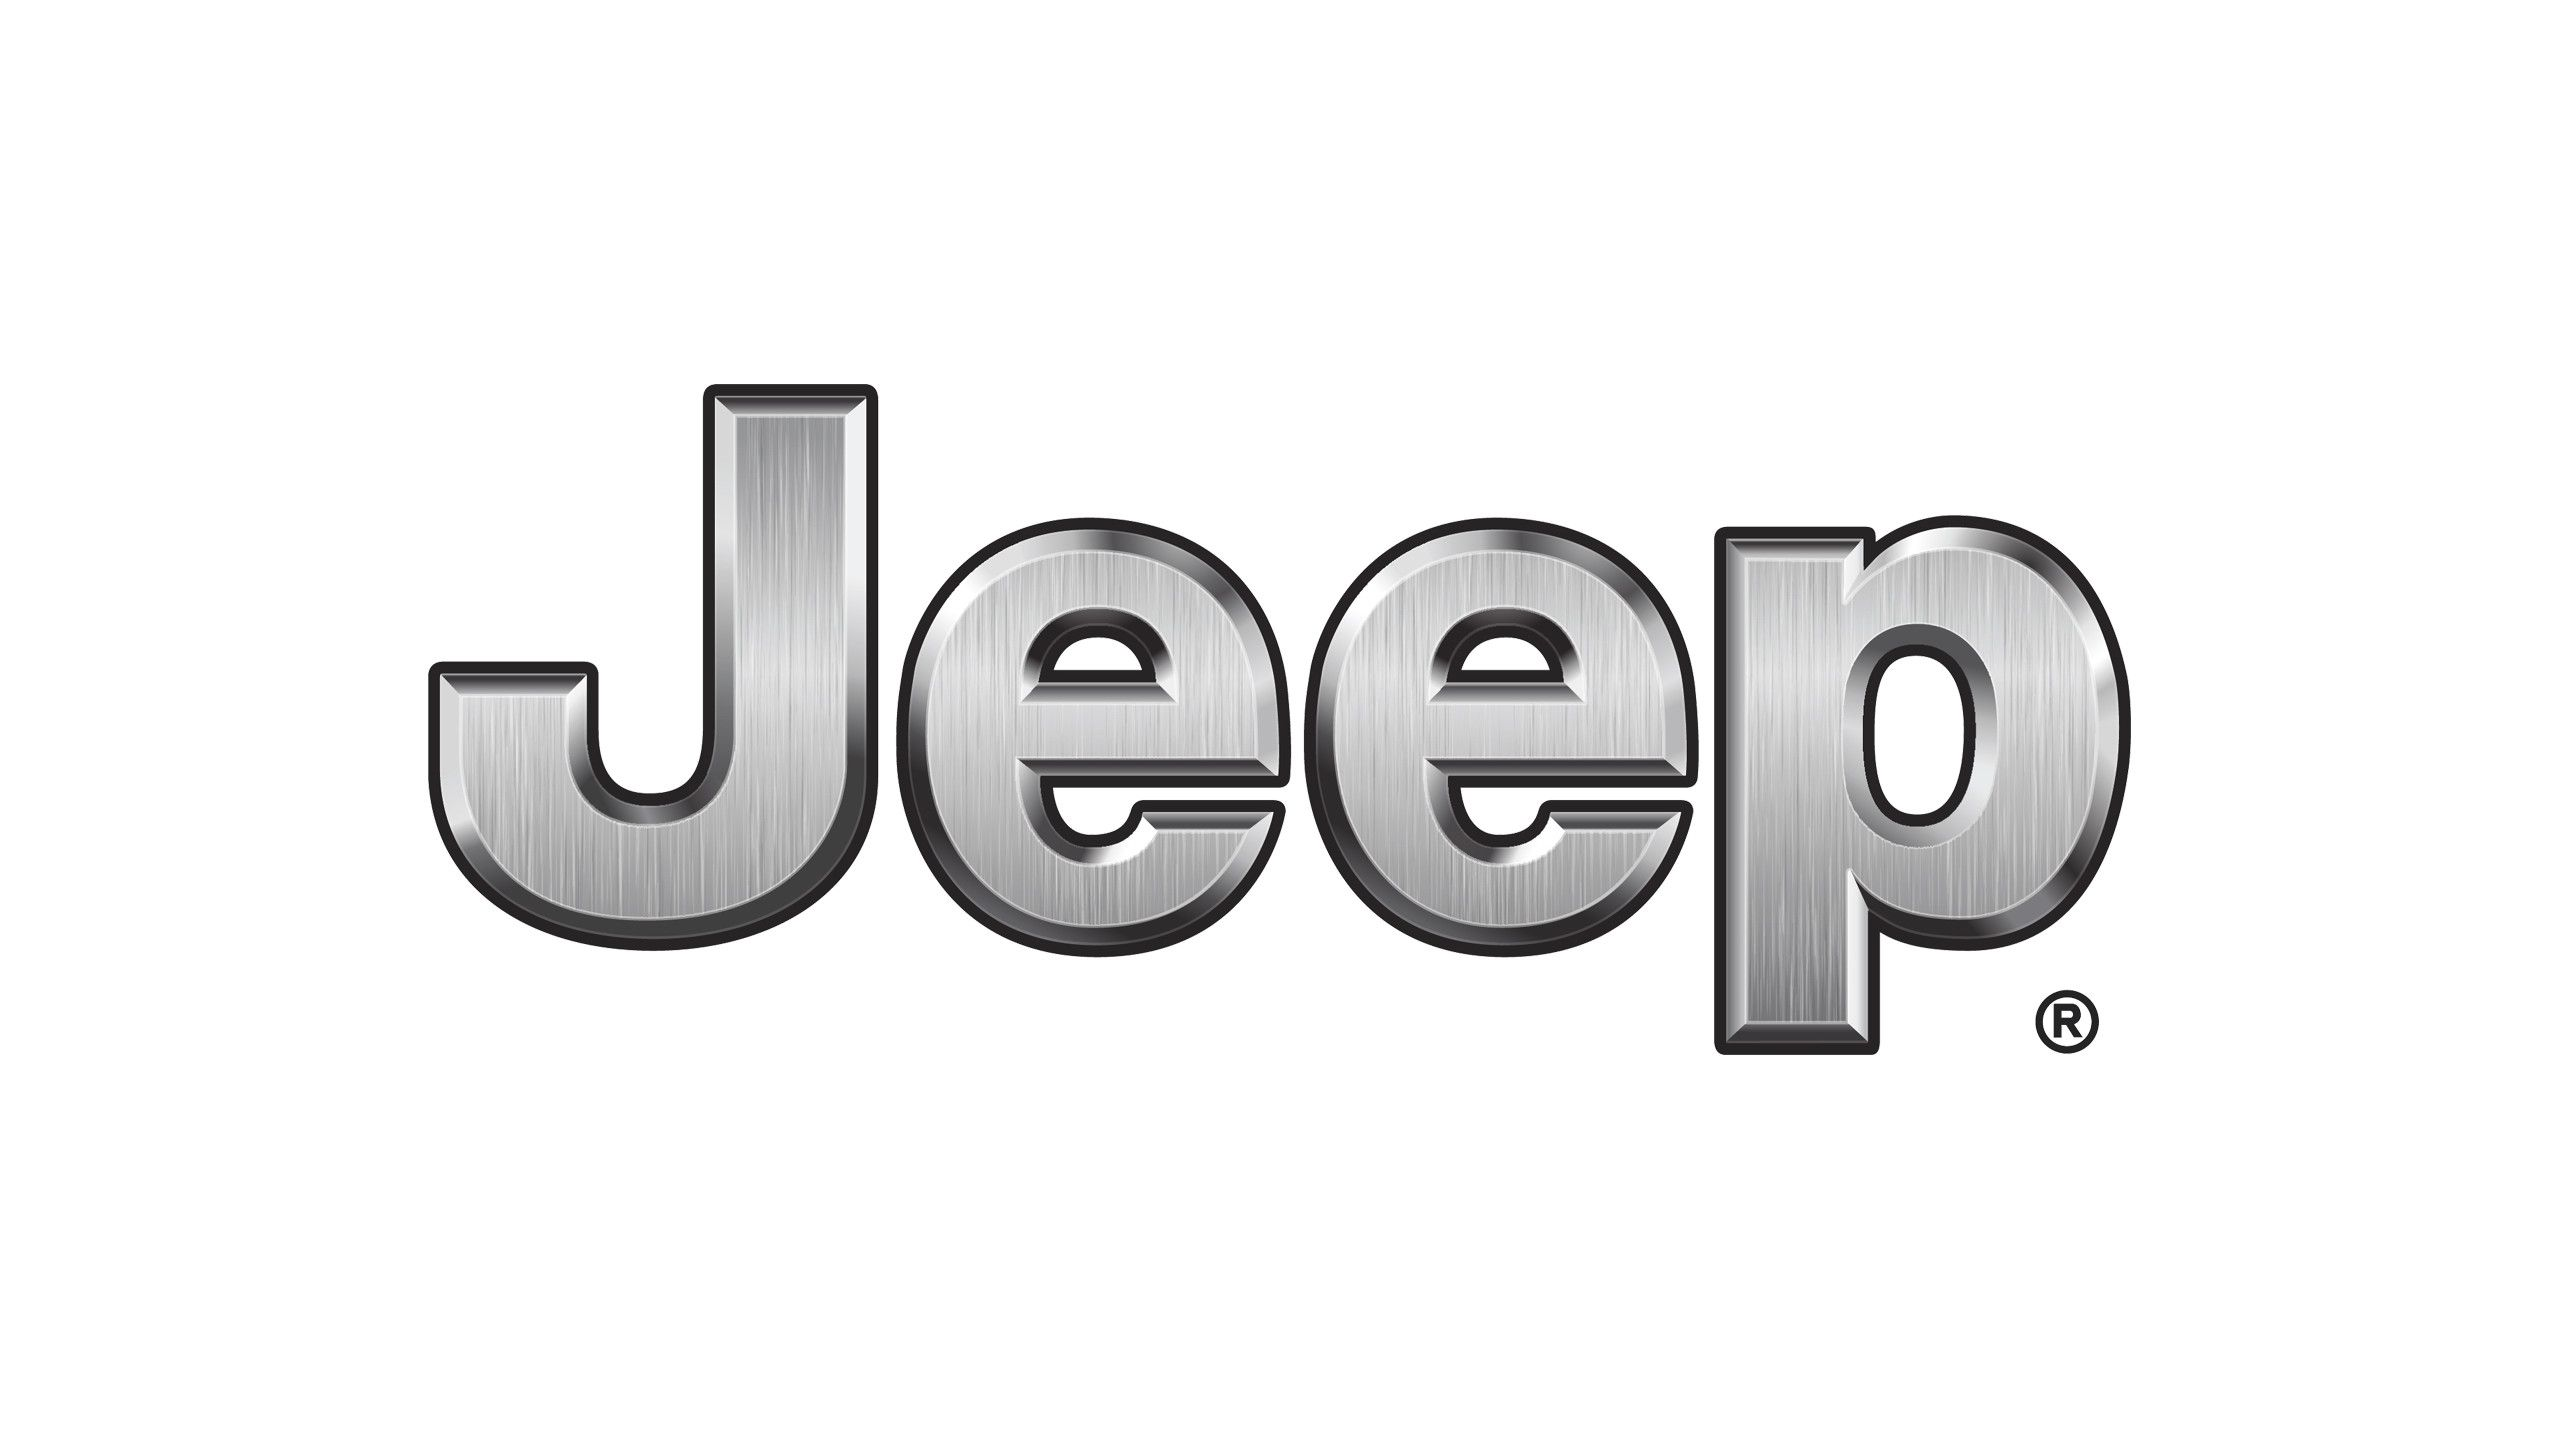 Res 2560x1440 Jeep Logo Jeep Logo Hd Png Meaning Information Carlogos Org Jeep Truck Repair Mobile Mechanic